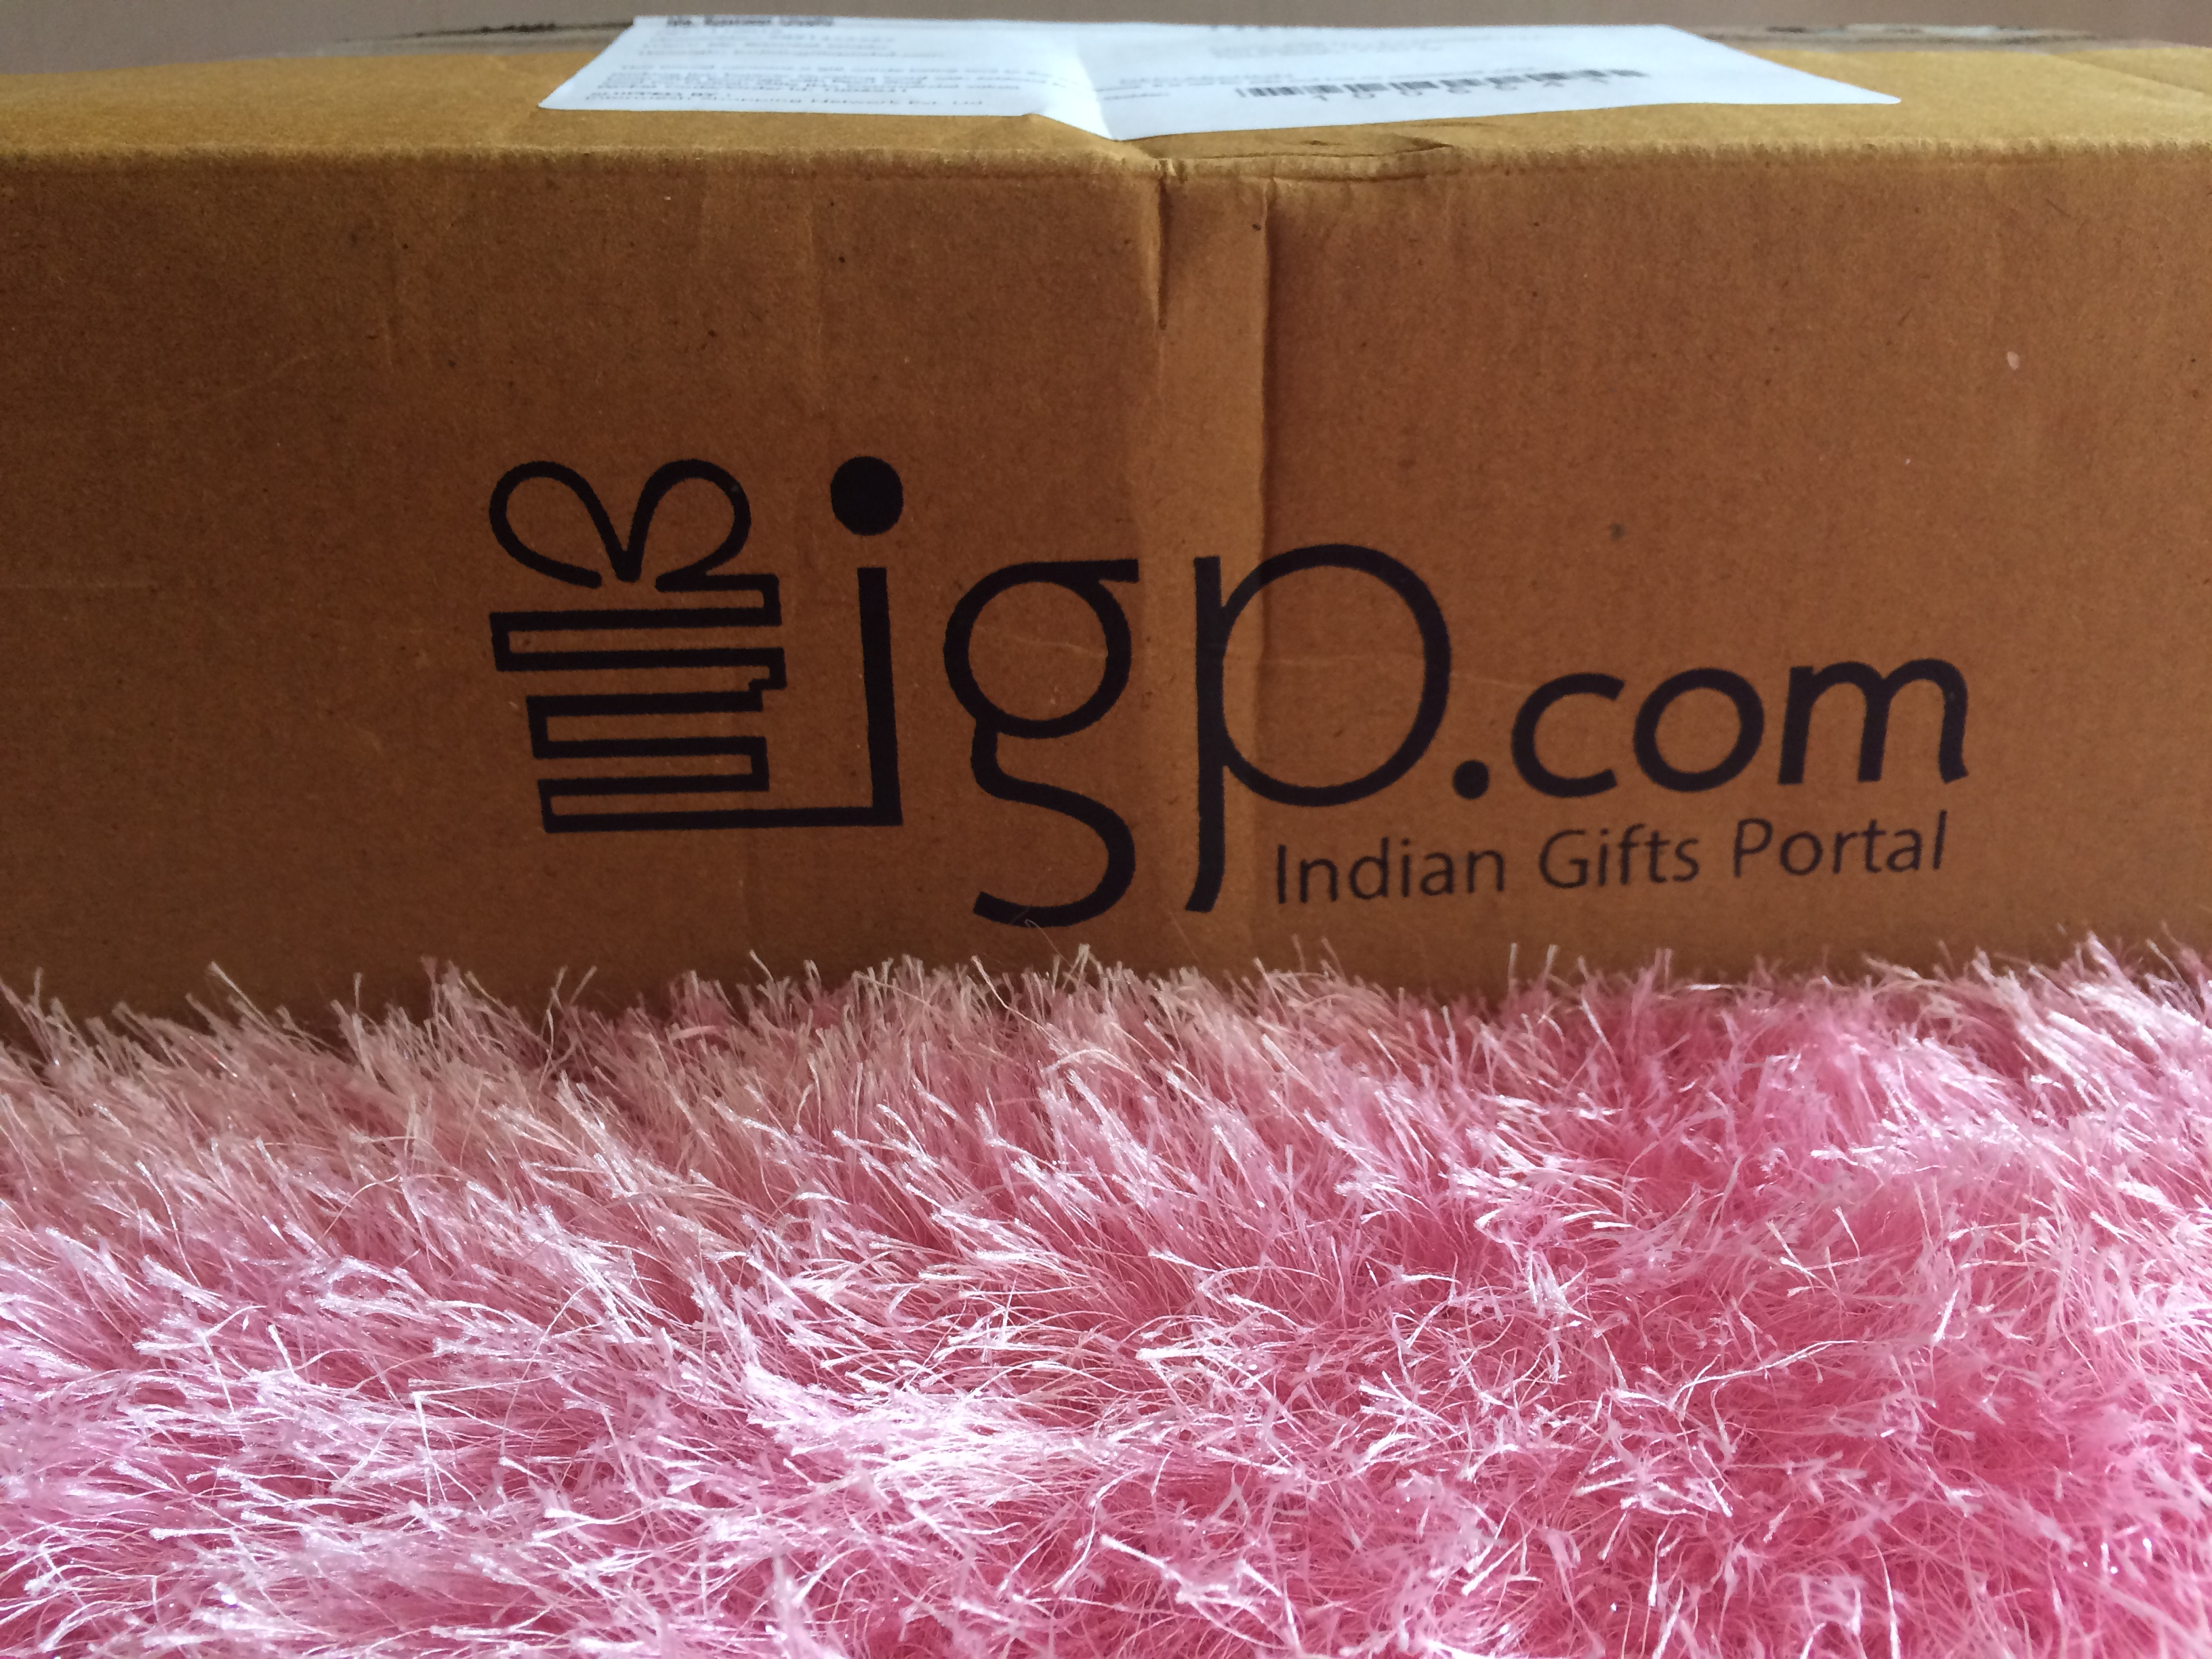 Package from IGP.com